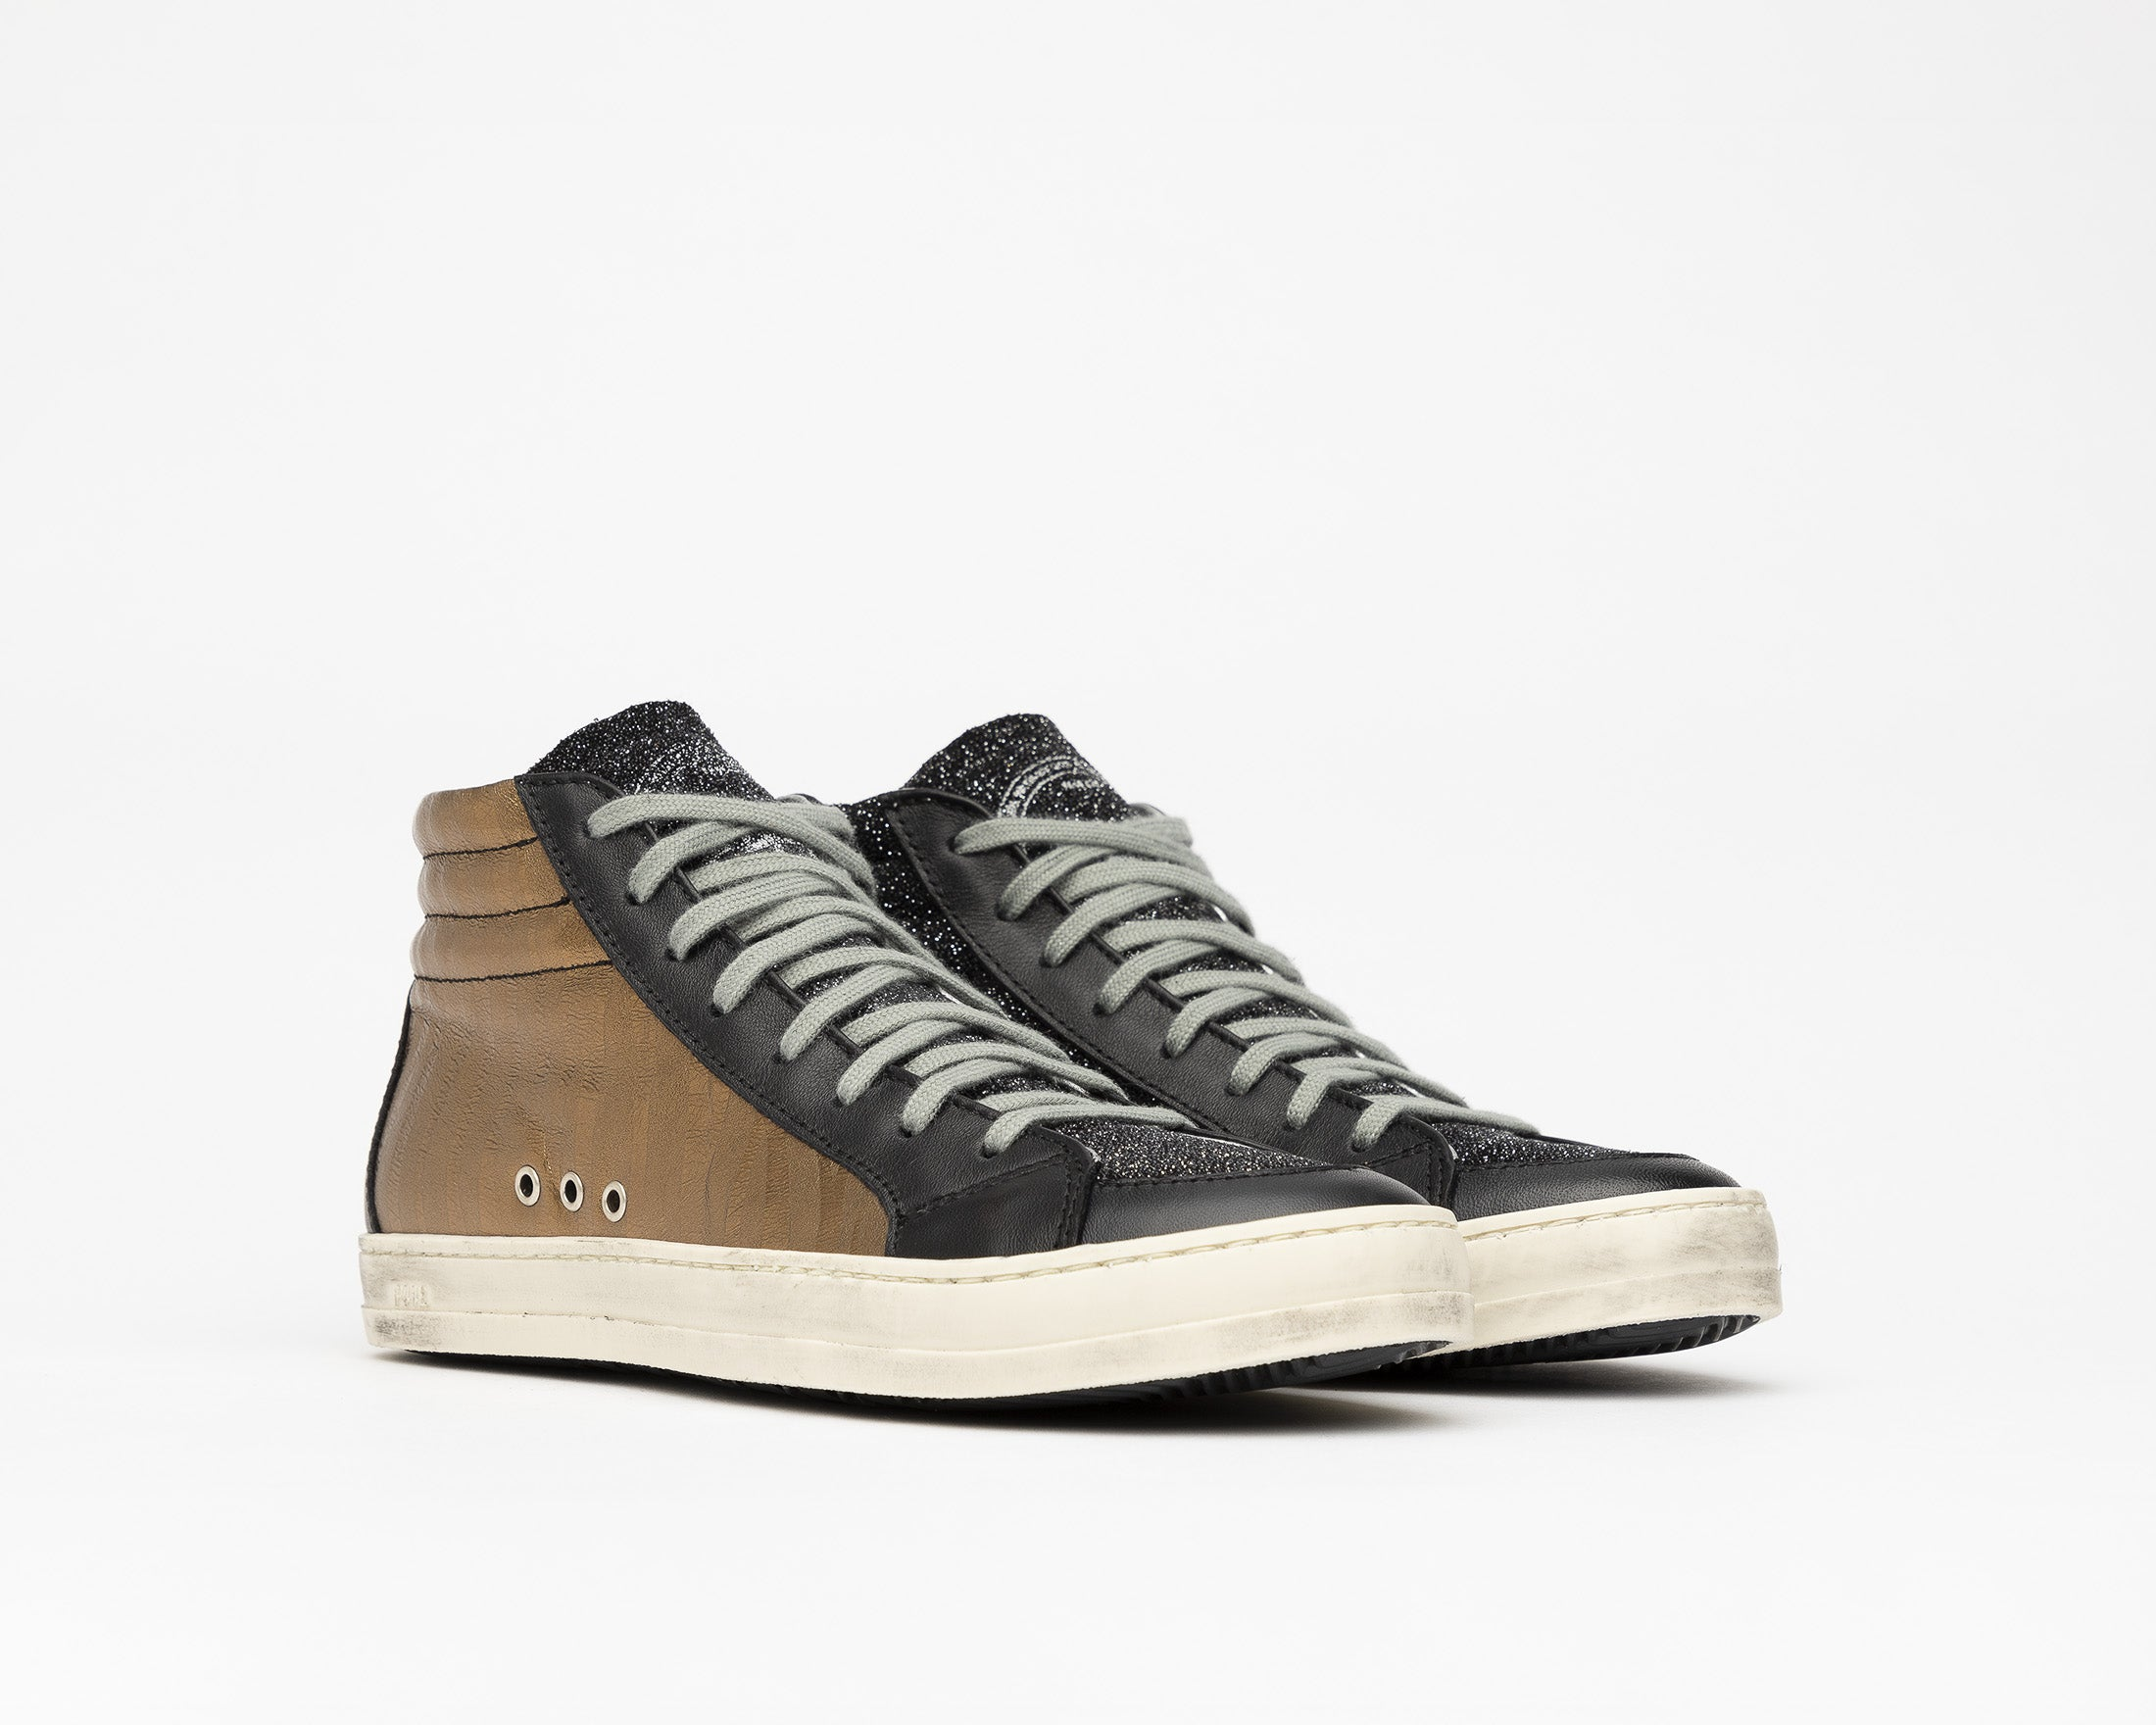 SkateBS High-Top Sneaker in Sahara - Side